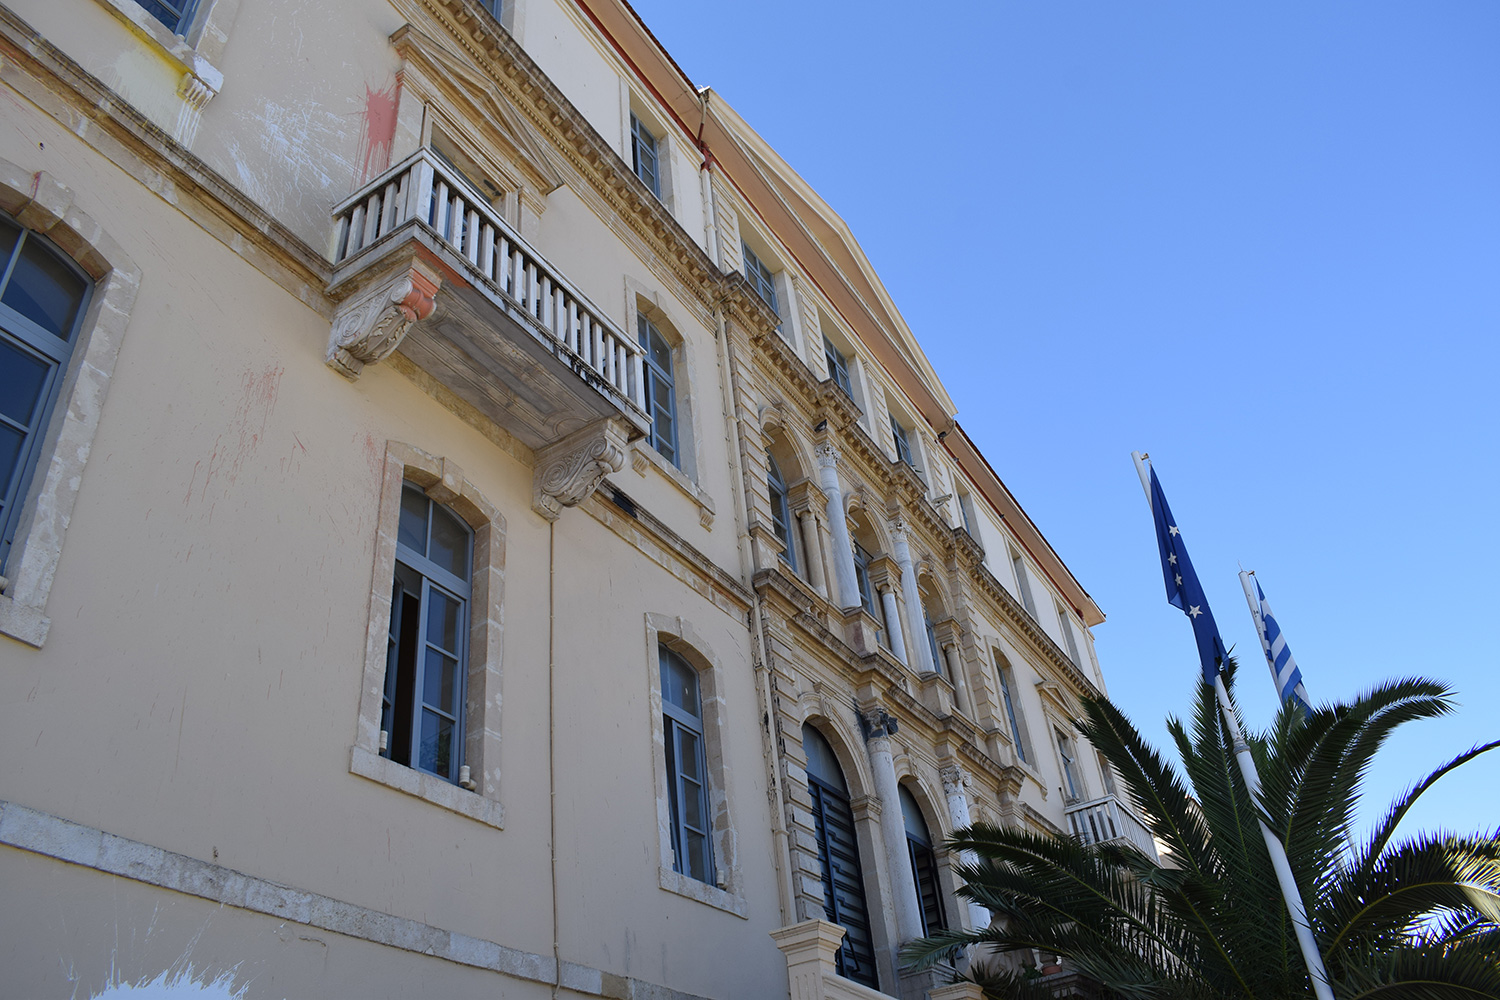 Side view of the Courts of Chania